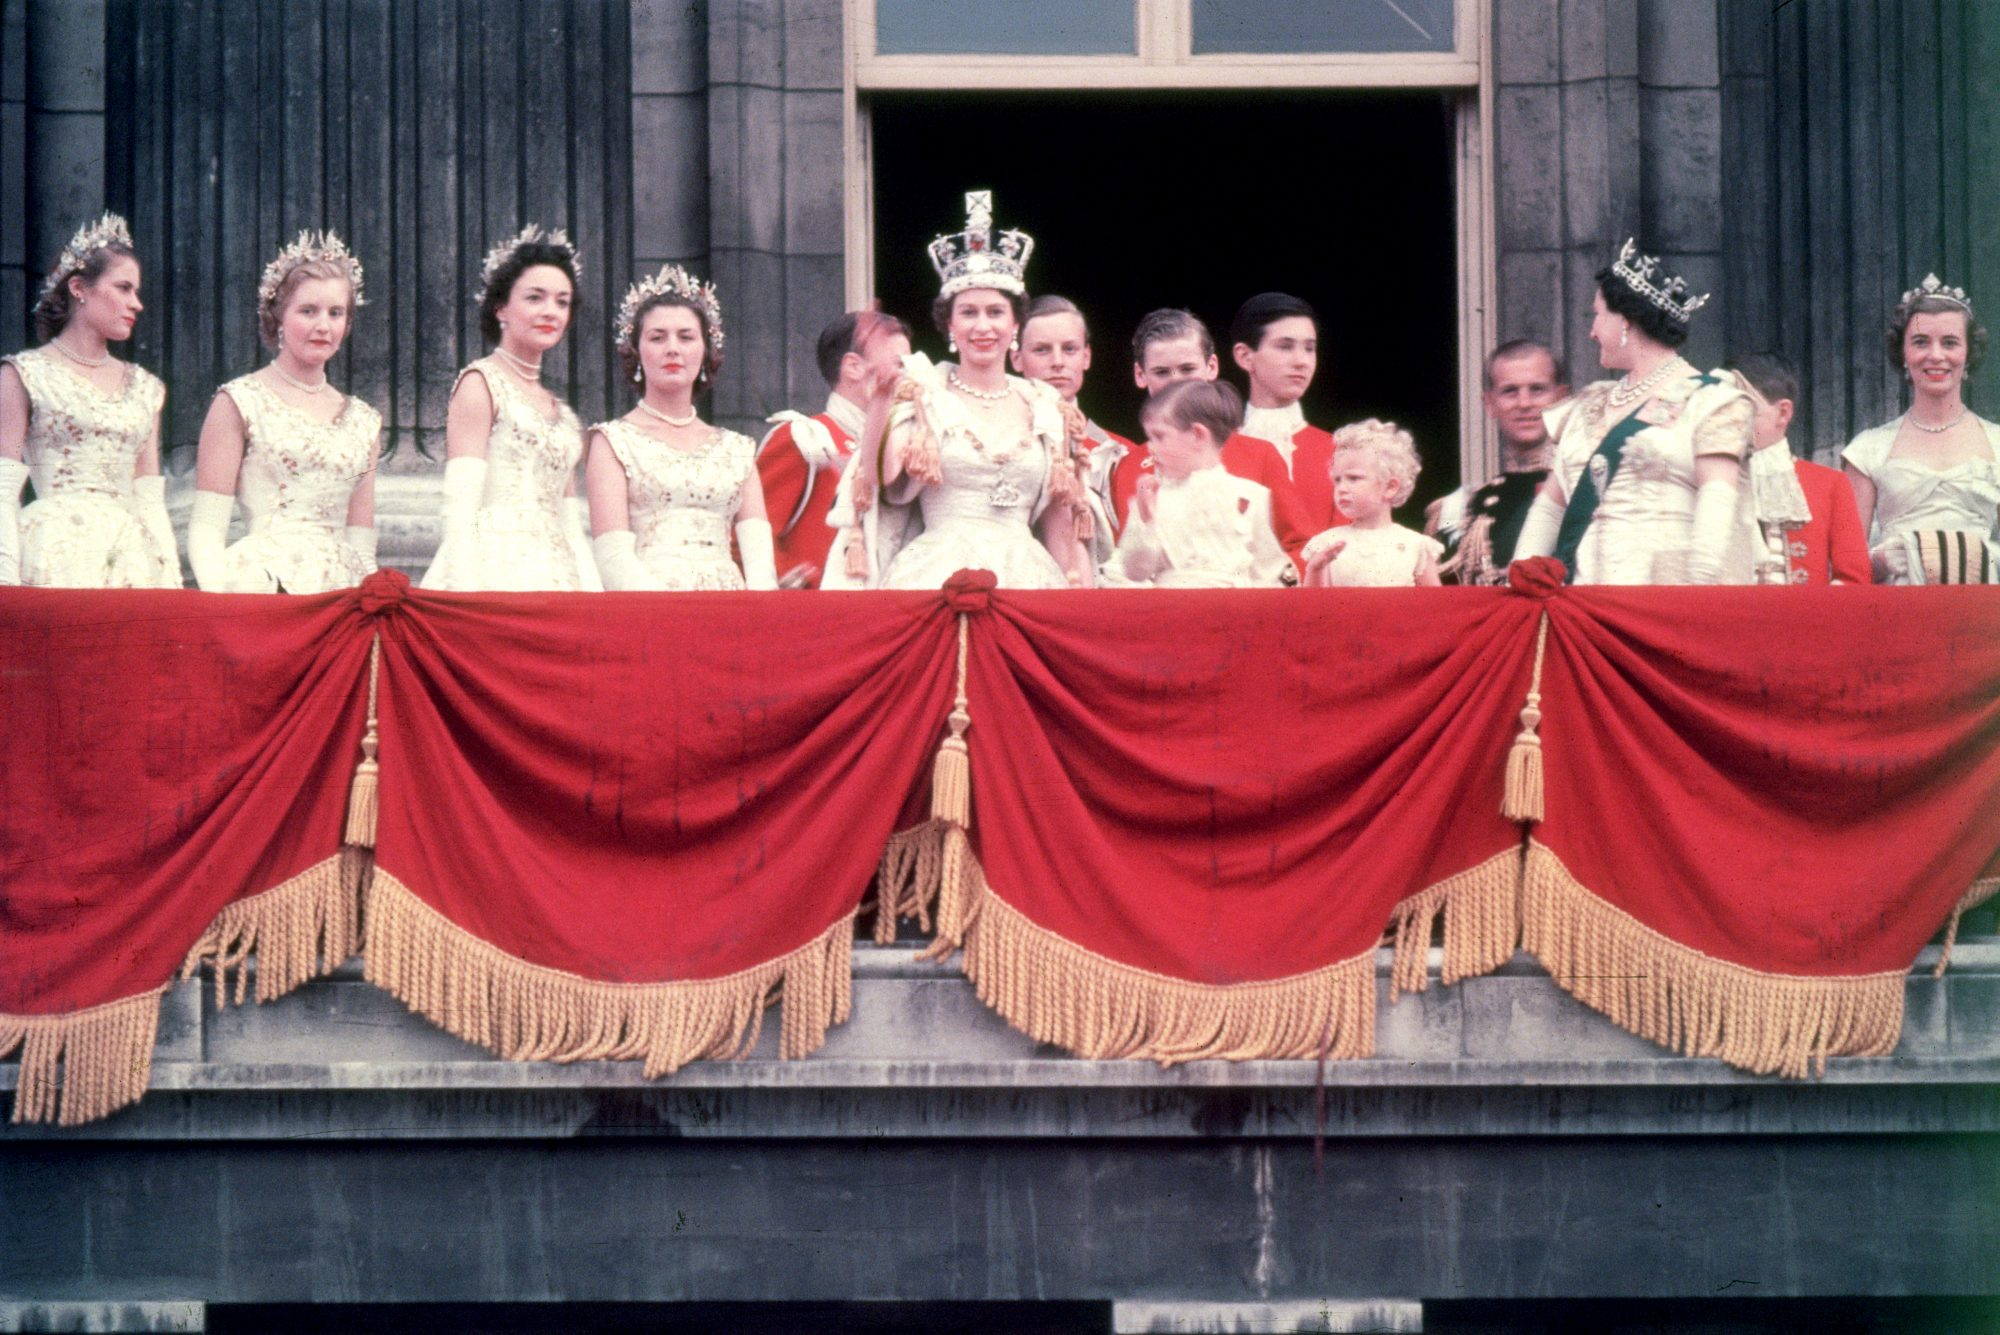 Maid of Honor Queen Elizabeth Coronation